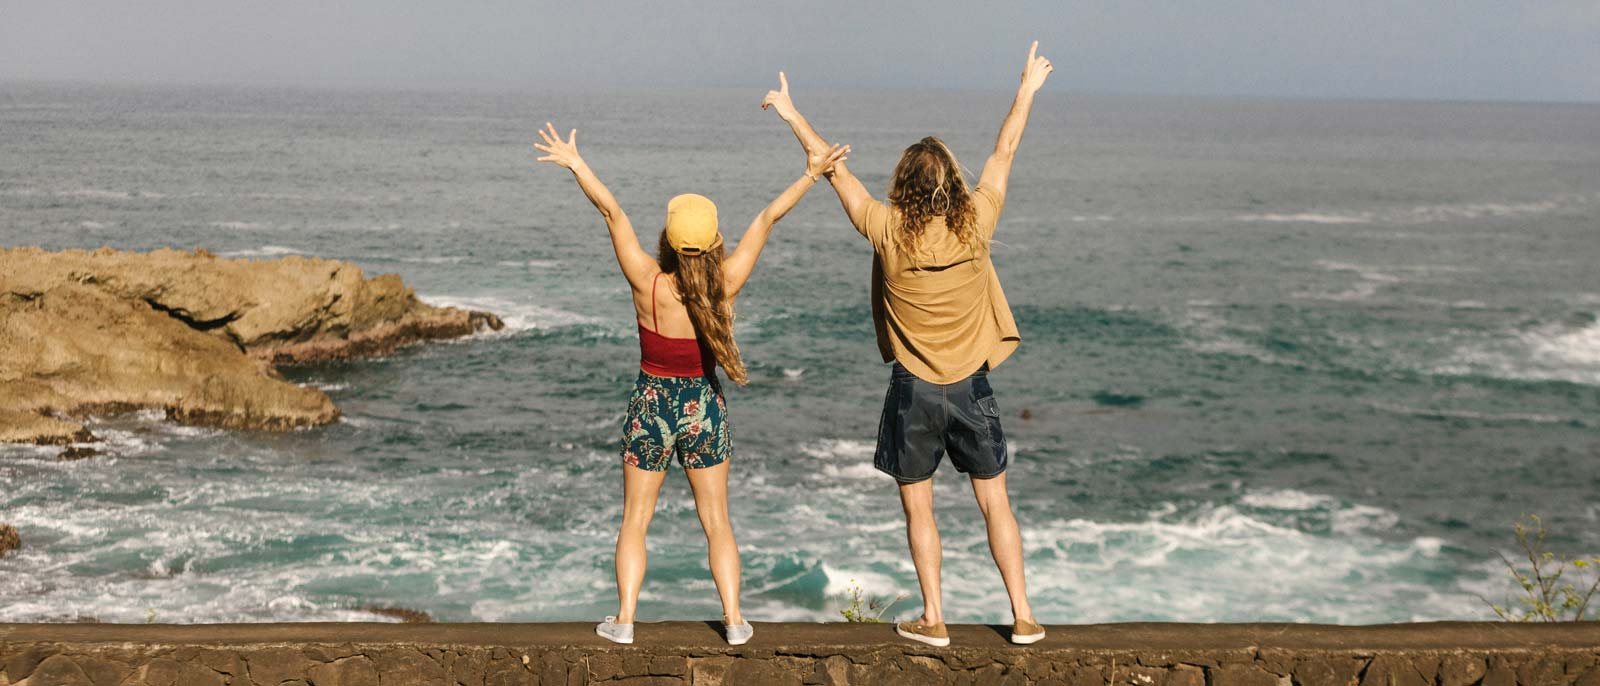 Man and woman standing on wall by ocean, wearing Sanuks.